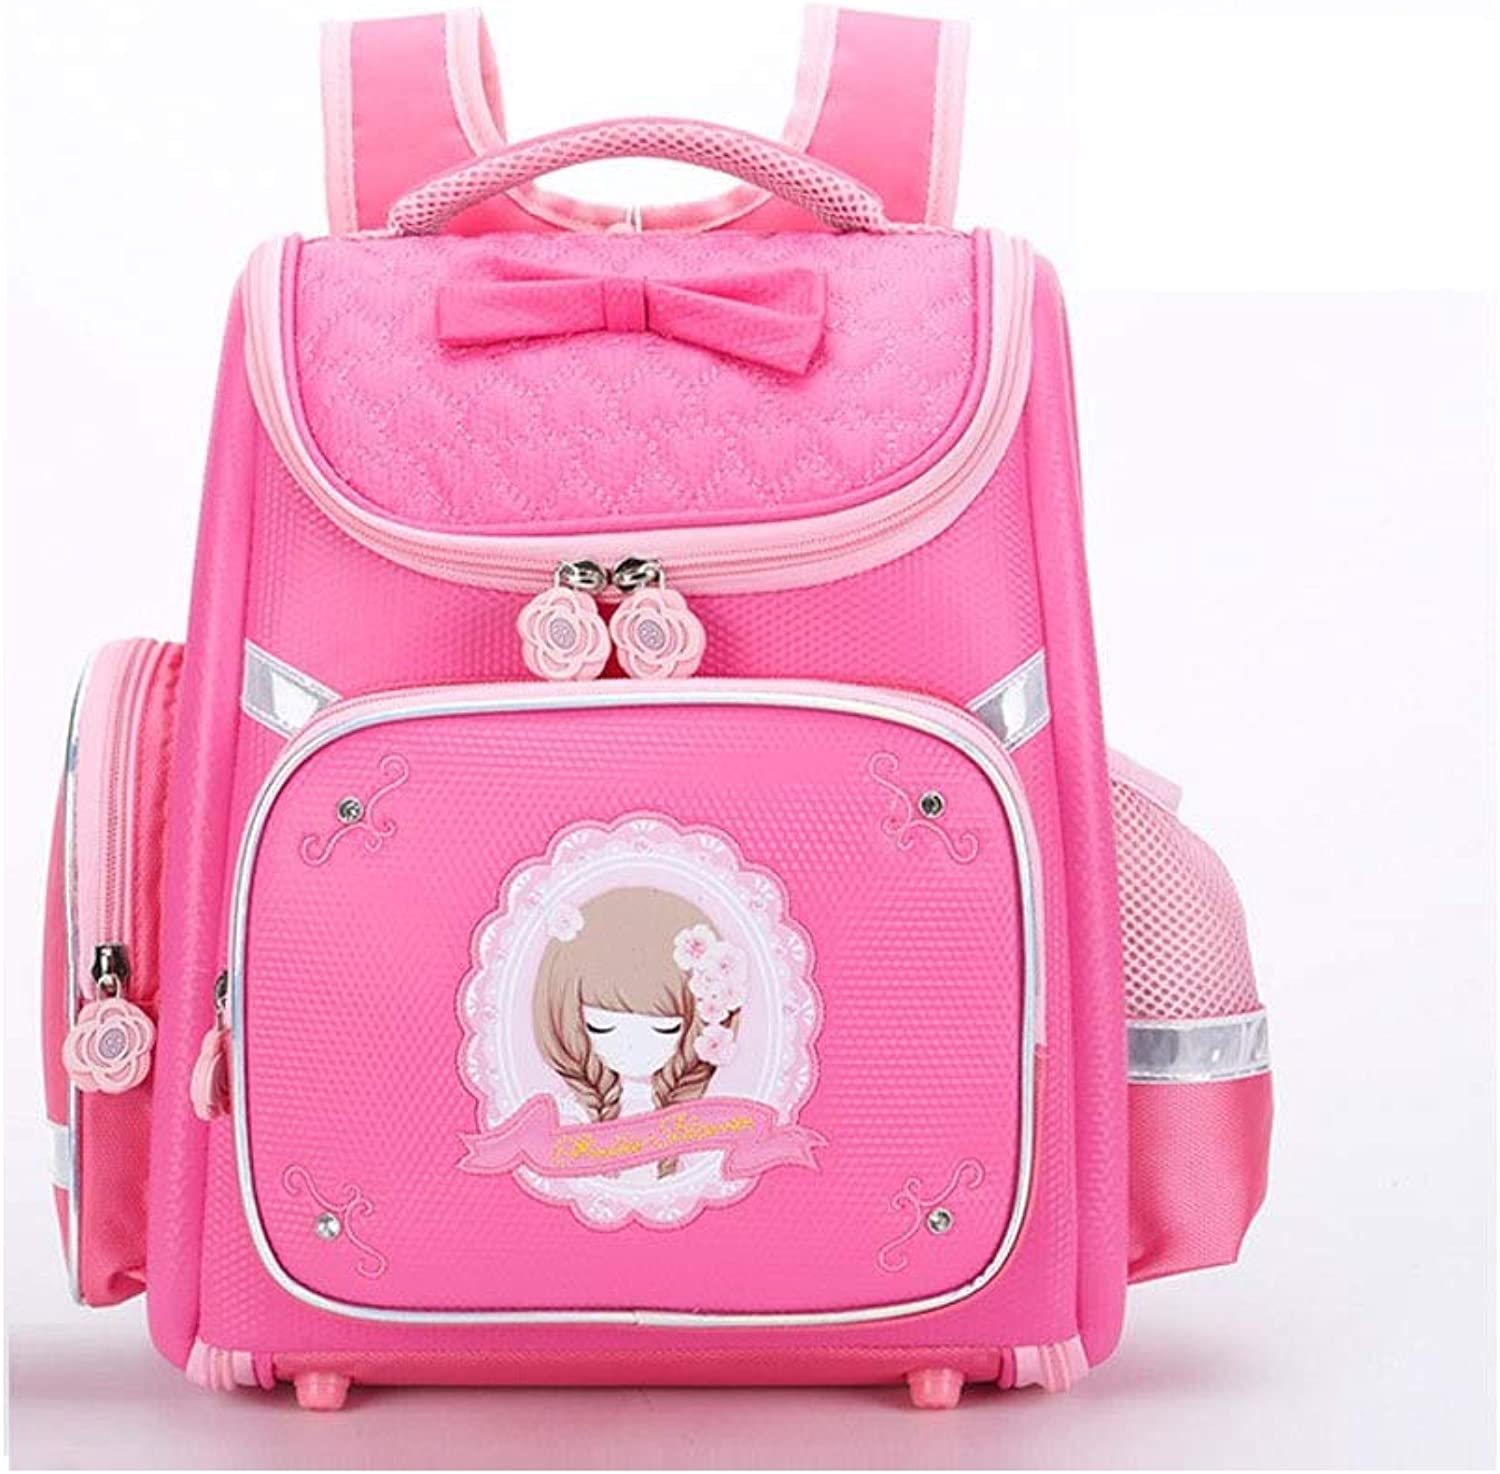 HENGTONGTONGXUN Grundschule Bag 1-3 Grade, Mdchen Cute Ridge Dekompression Space Backpack, Cartoon Bag Hohe Qualitt